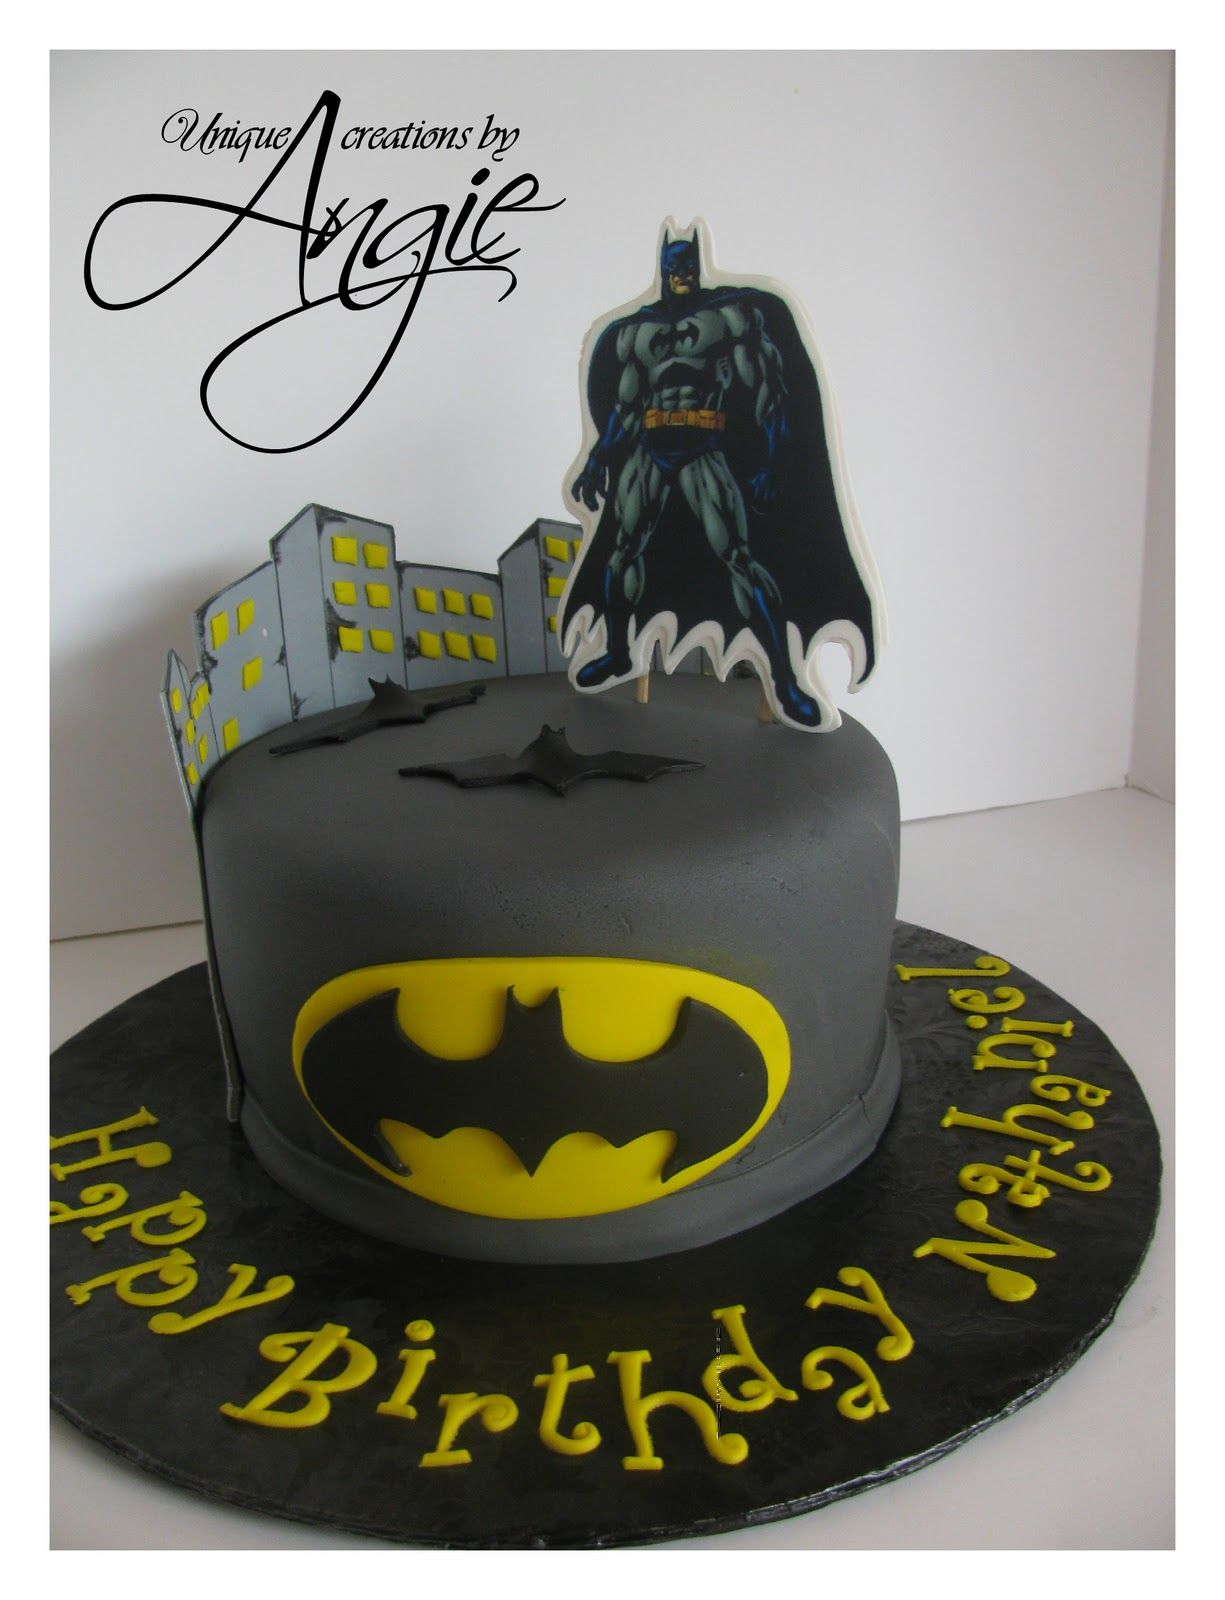 Pleasing Walmart Bakery Birthday Cakes Photos Batman Boy Band Personalised Birthday Cards Veneteletsinfo